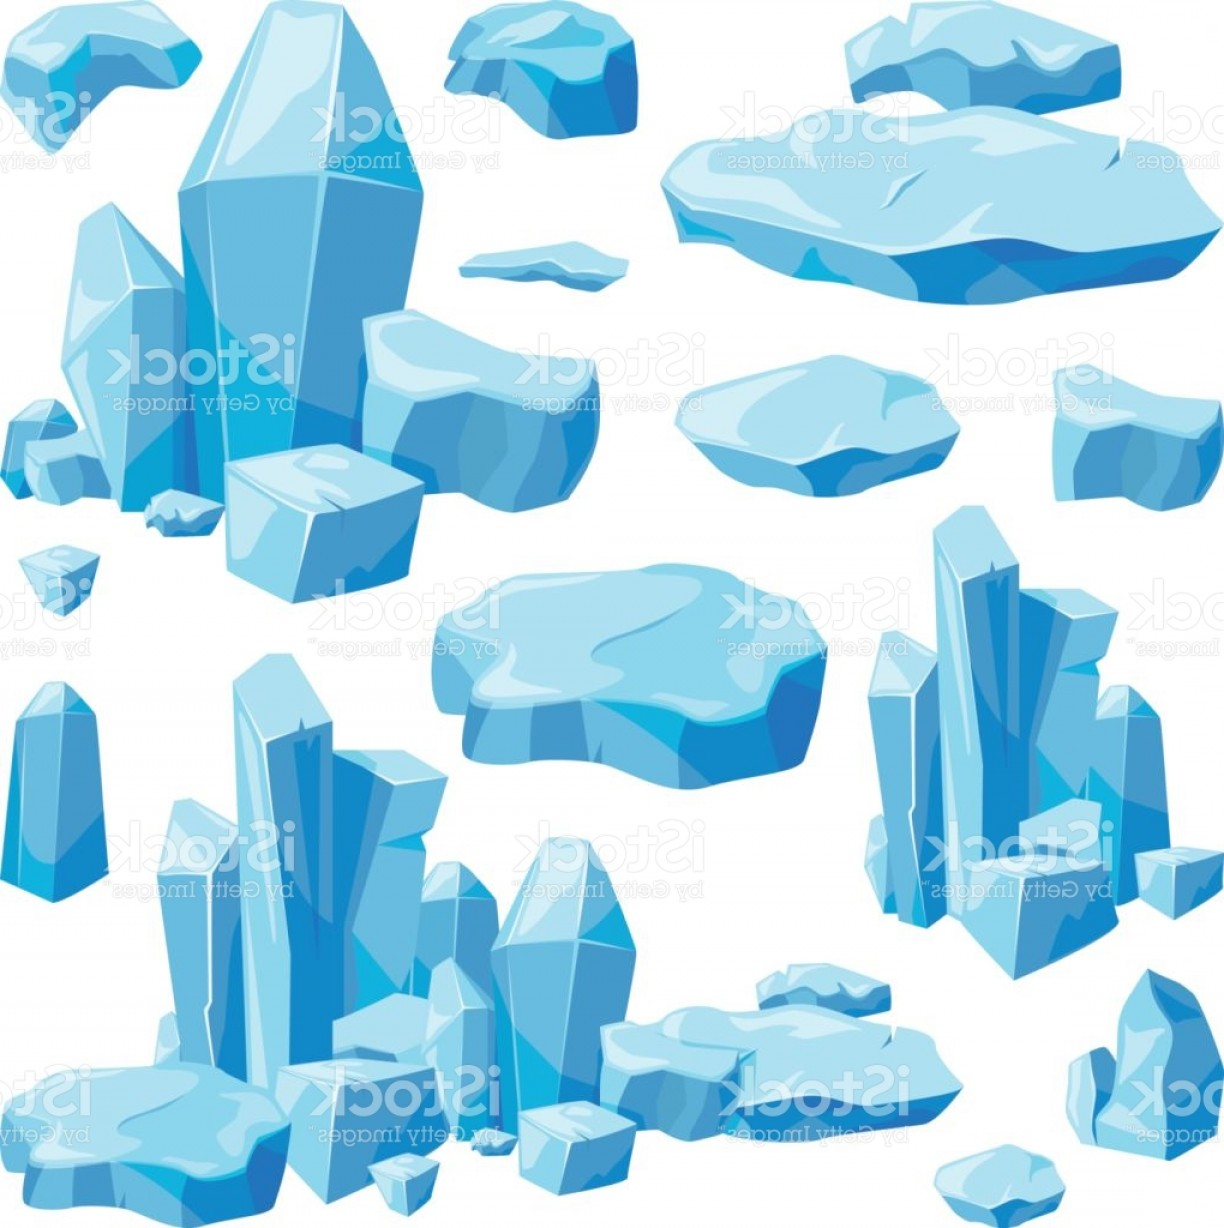 Vector Broken Pieces: Broken Pieces Of Ice Game Design Vector Illustrations In Cartoon Style Gm